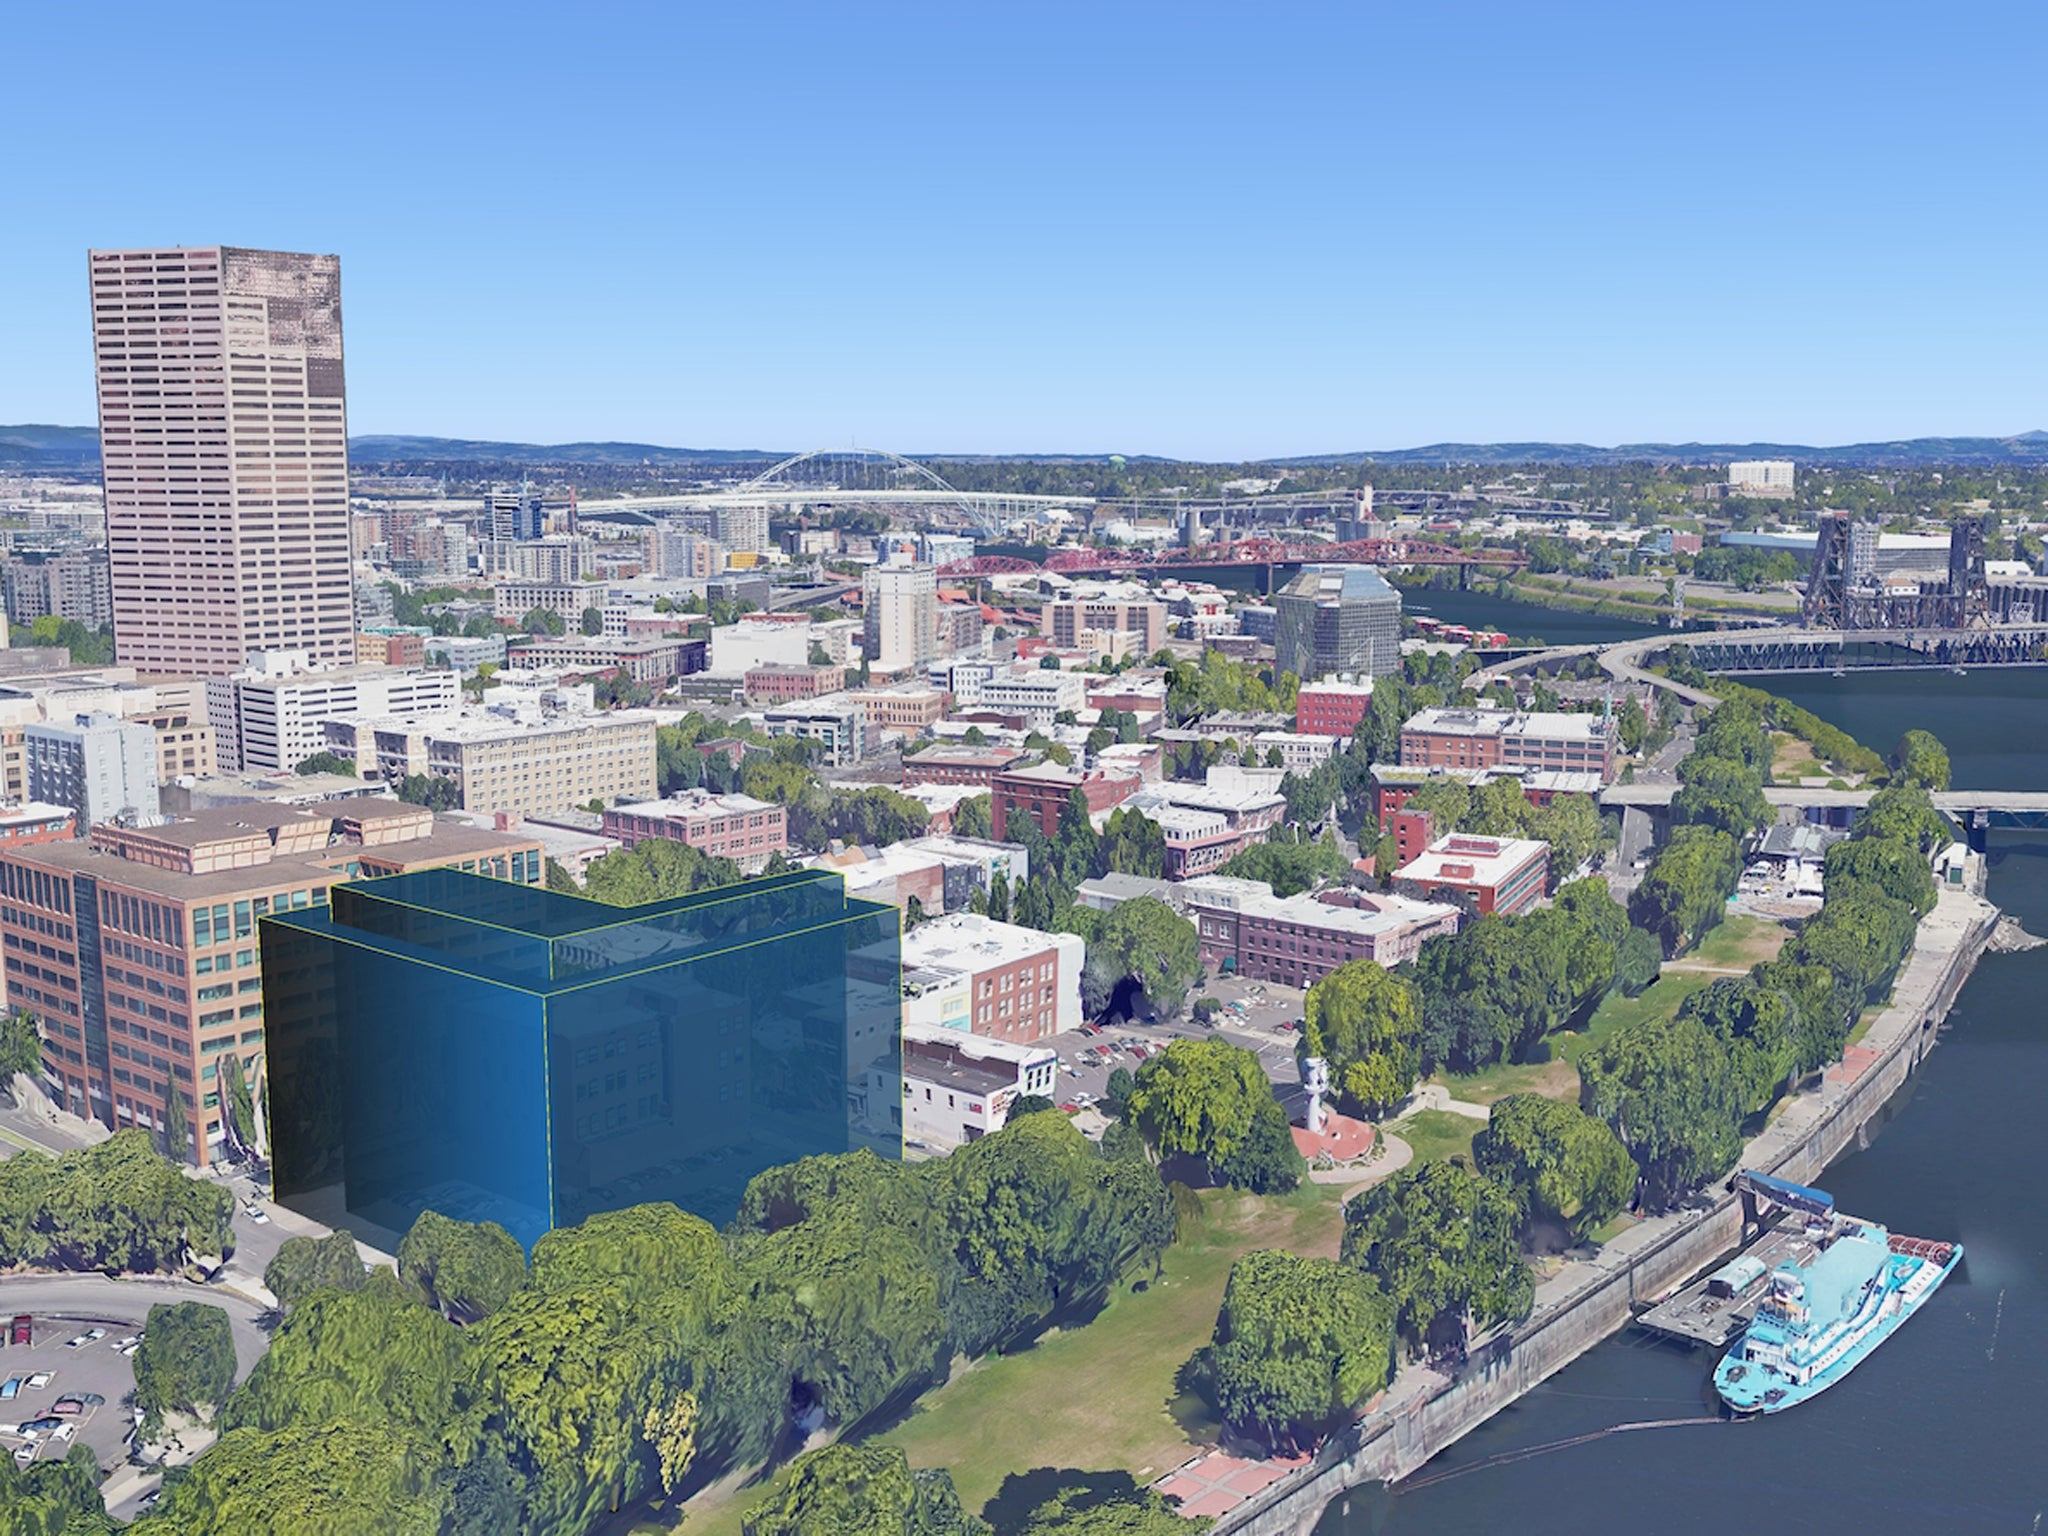 Google Earth Pro: high-end, $400 per year mapping tool goes free